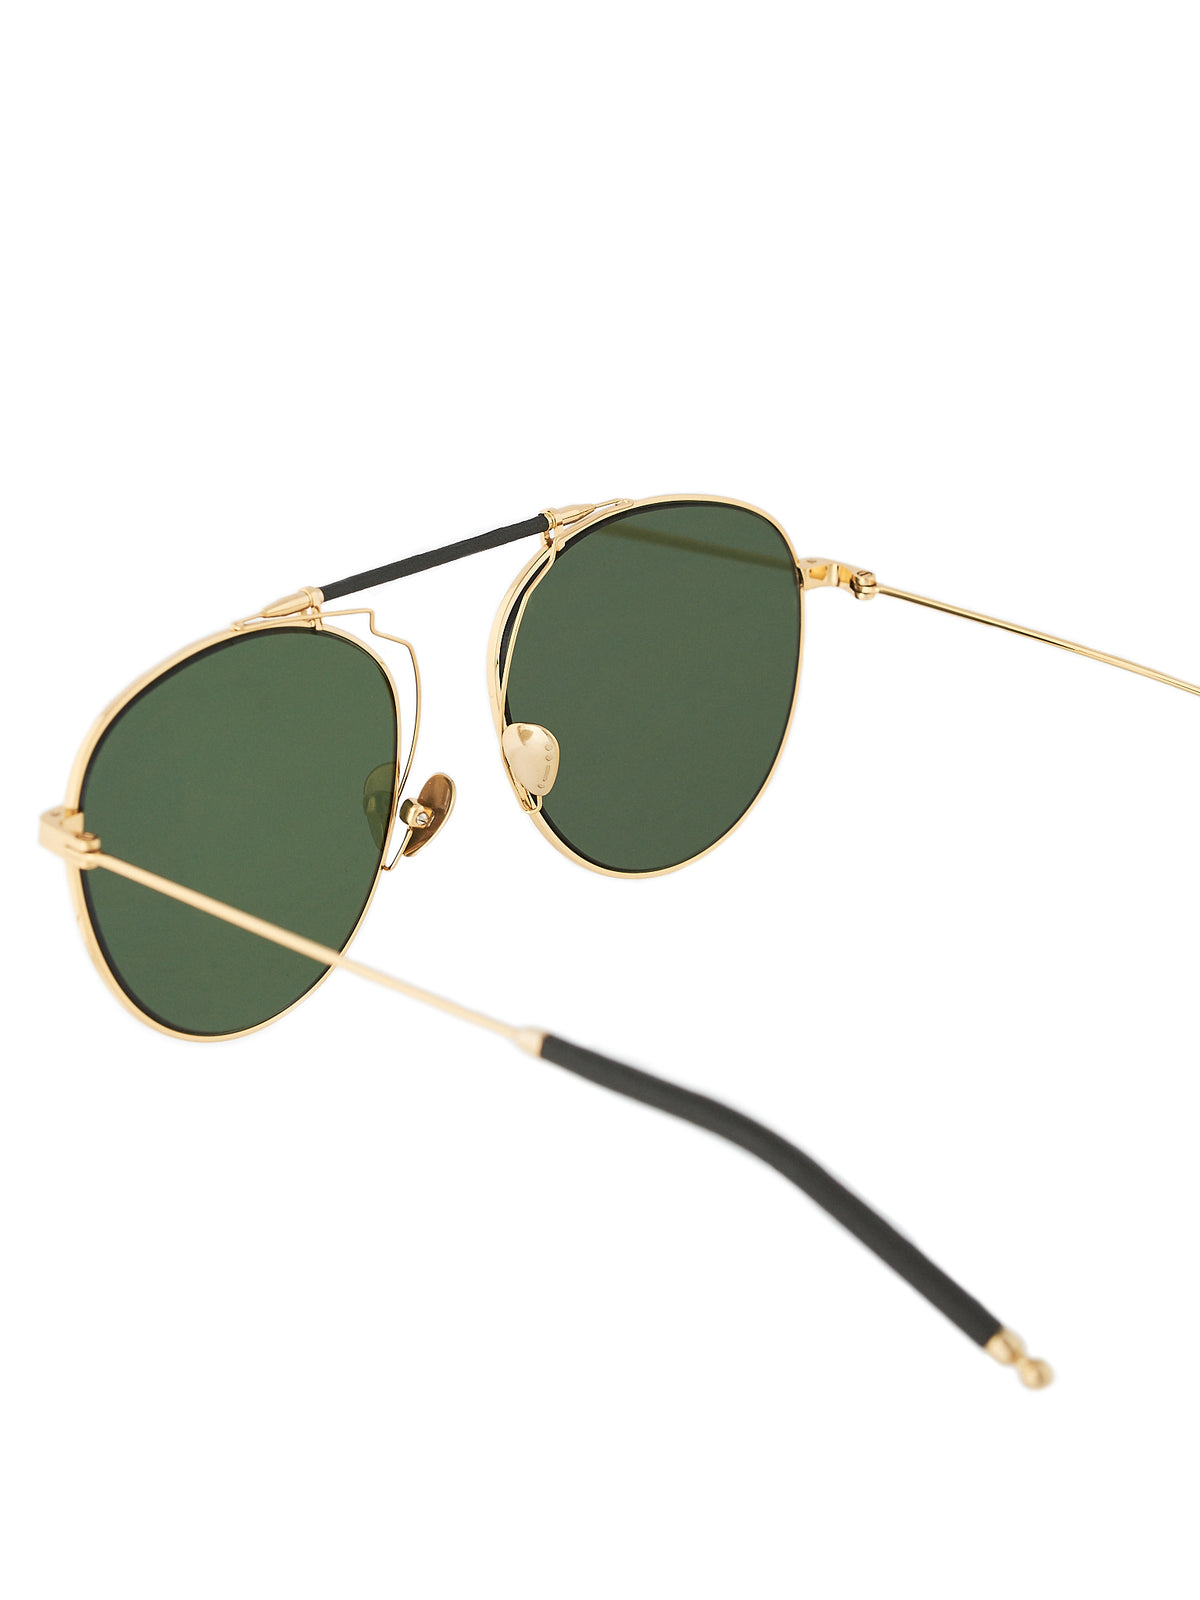 Sance - Yellow Gold/Green Leather Aviators (SANCE-803-YEL-GOLD-P3128-GS)